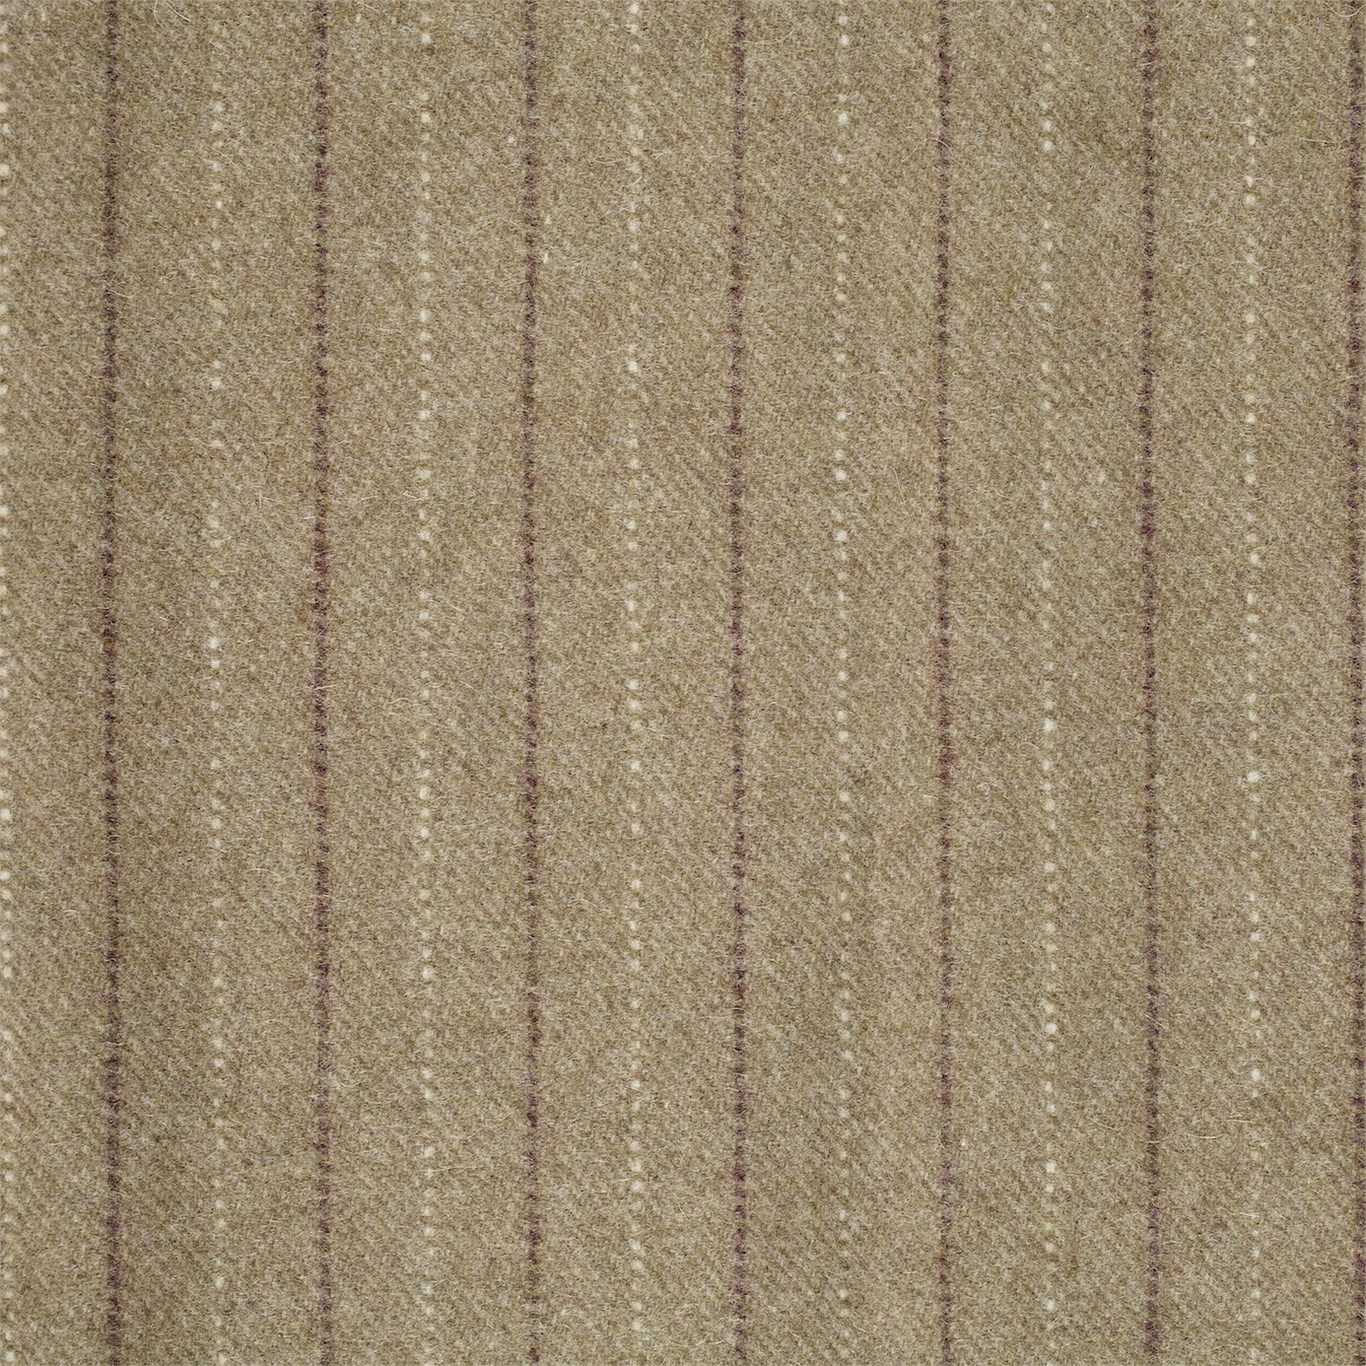 Image of Sanderson Tailor Sage Fabric 233252